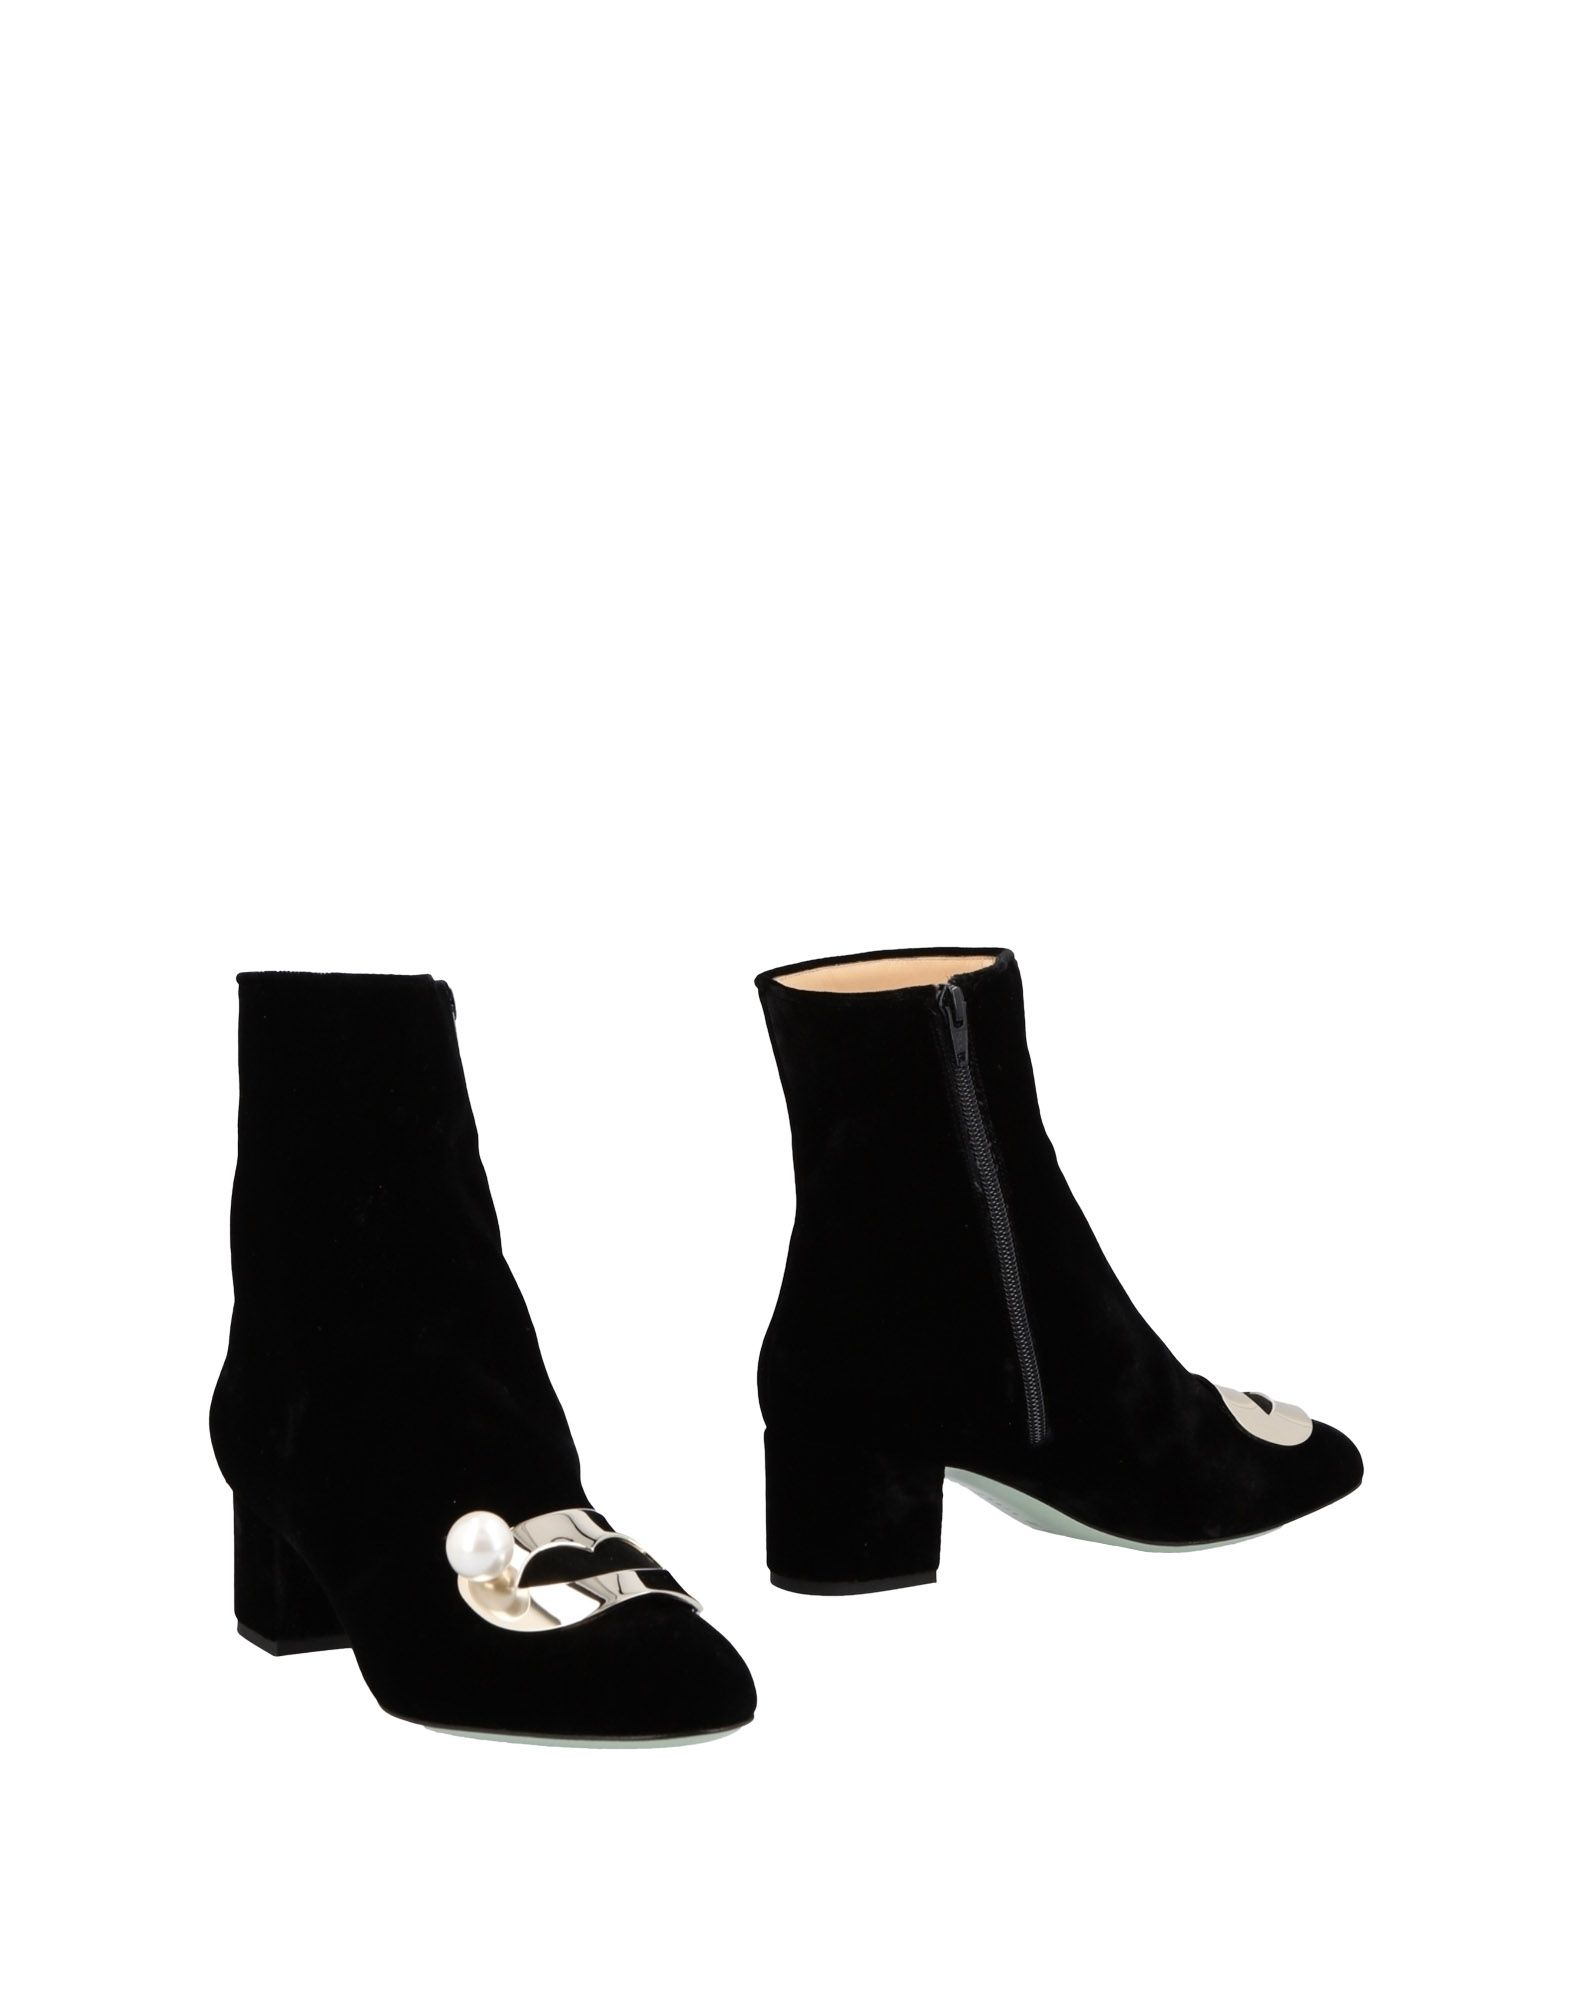 GIANNICO Ankle Boot in Black